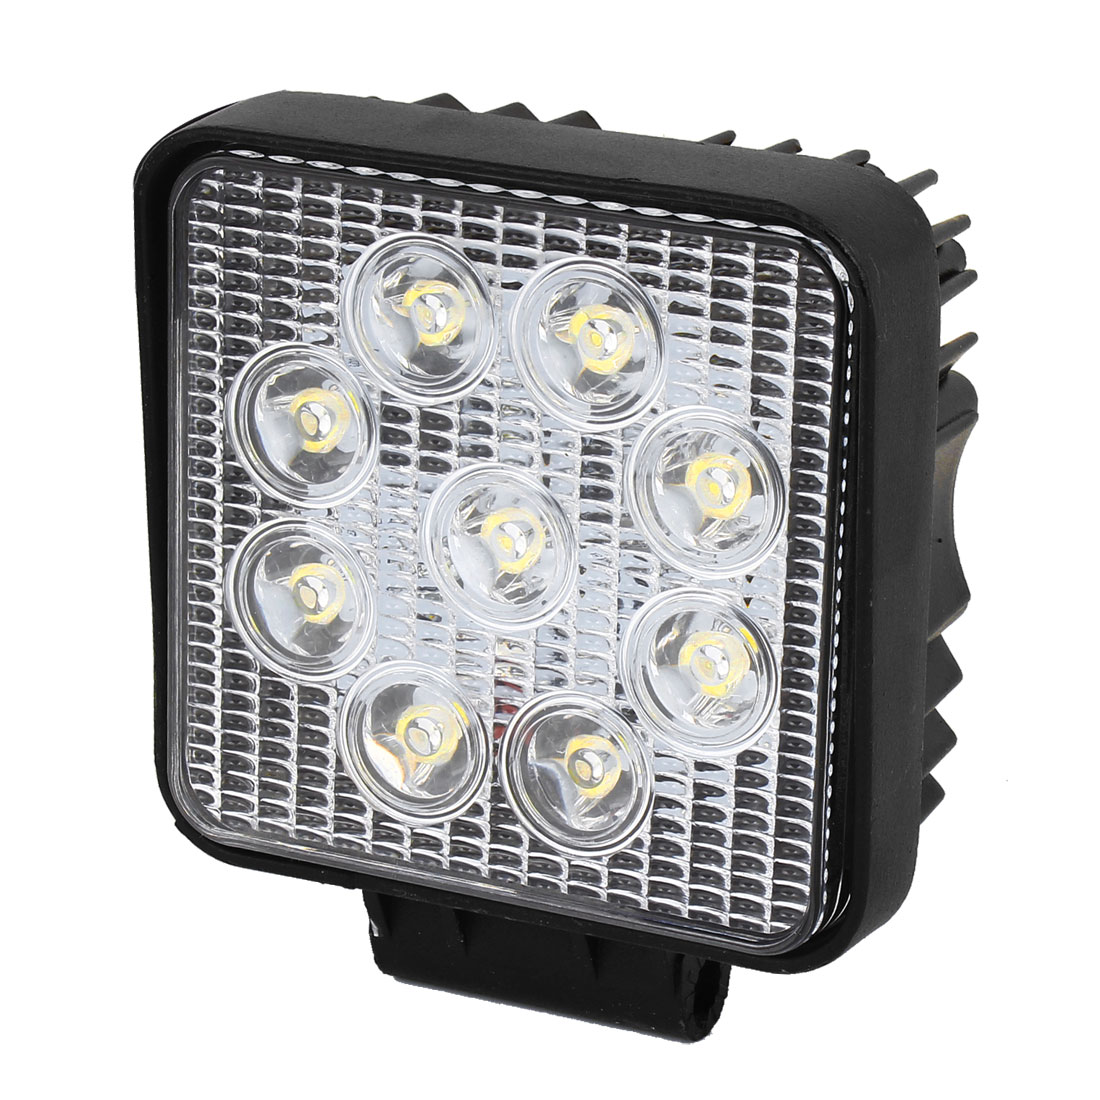 DC 12V 27W Black Metal Shell White 9 LED Working Light Offroad Spot Beam Lamp for Car Truck